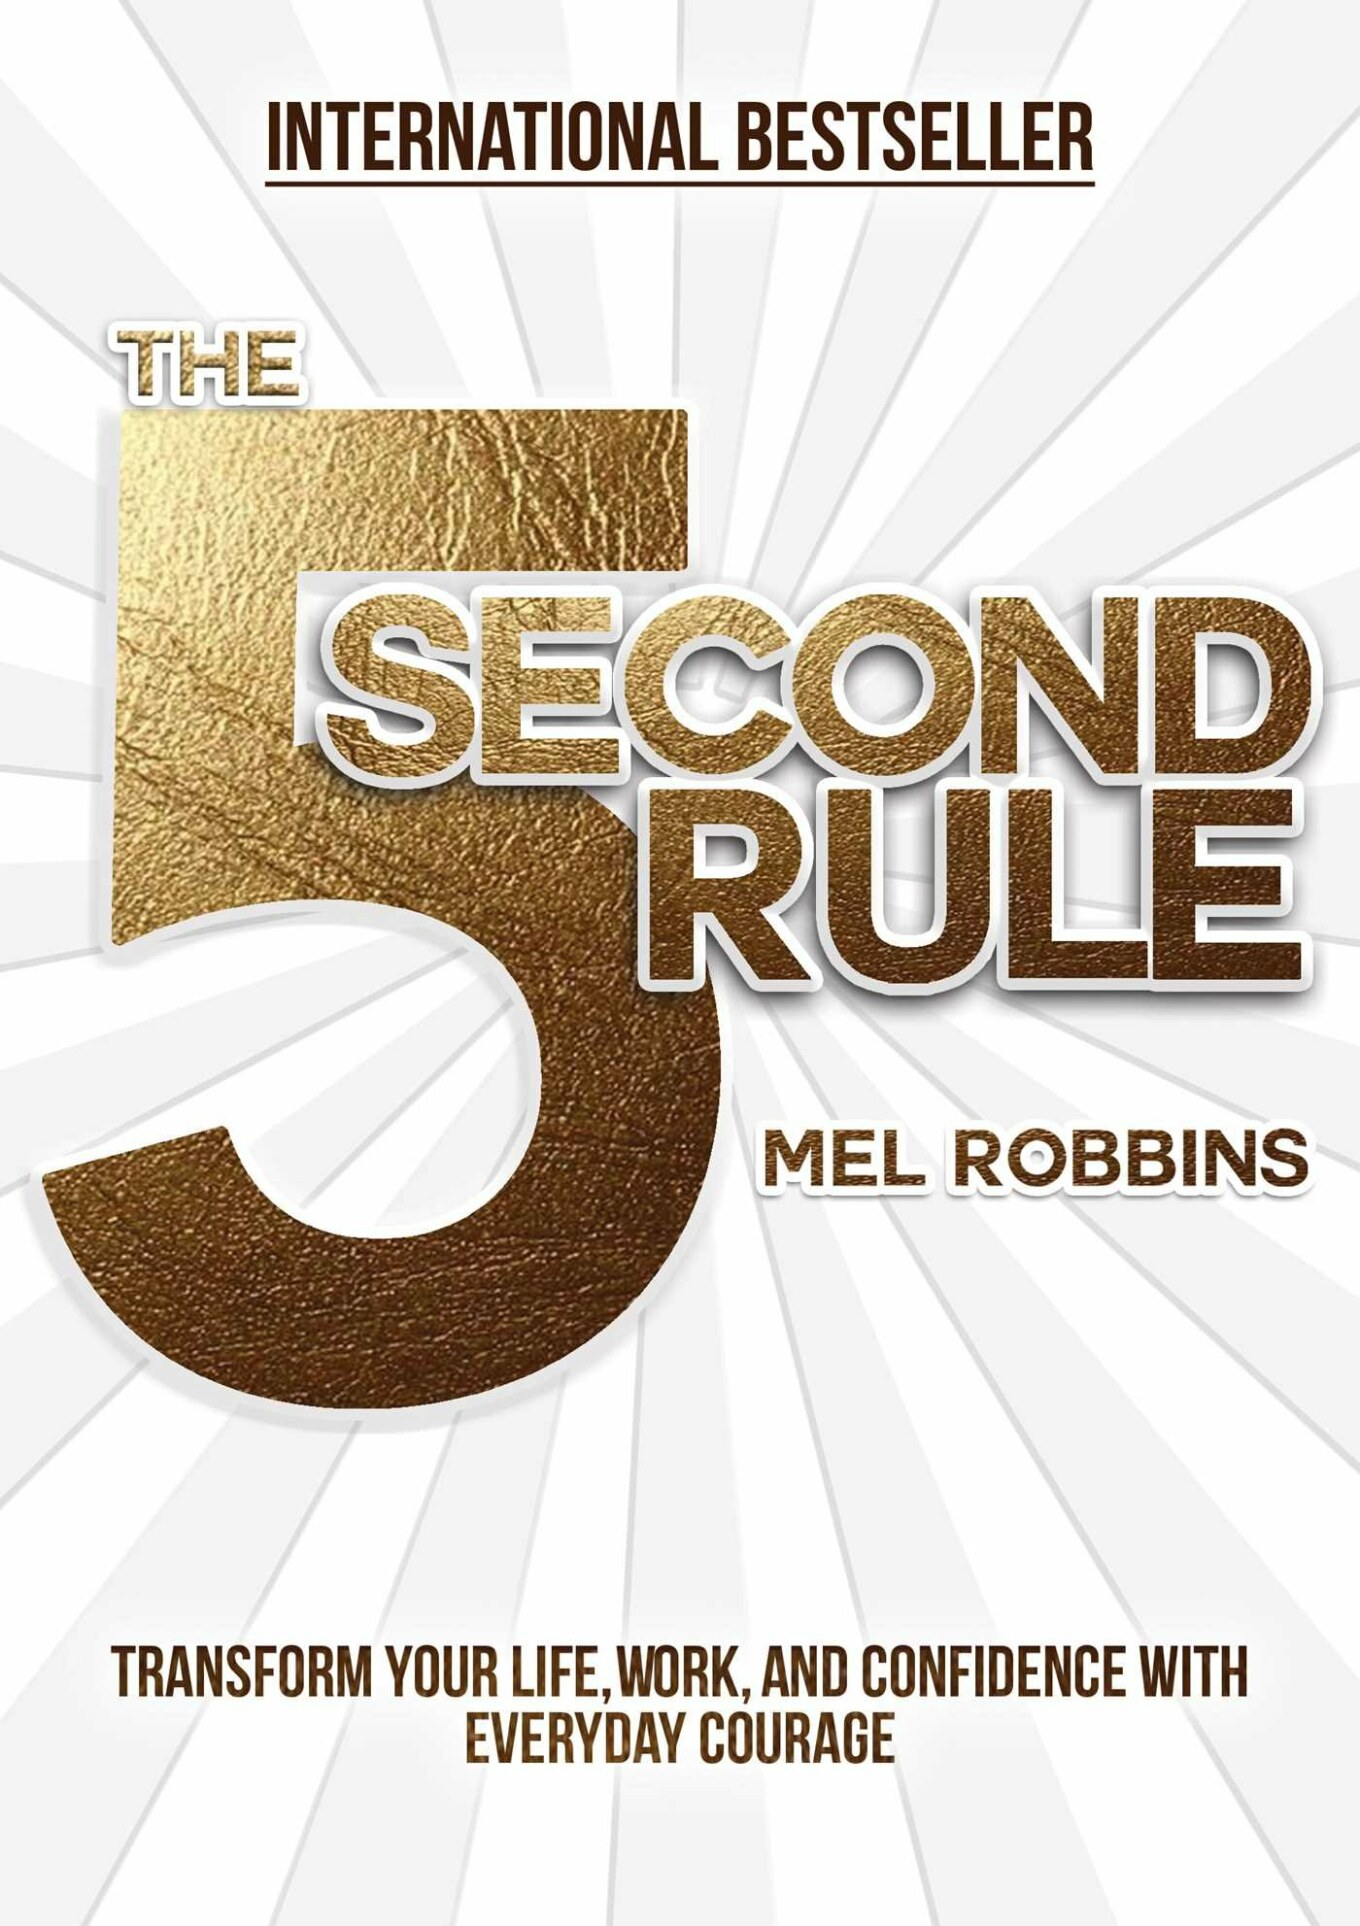 The 5 Second Rule is a great book to help you create an intentional life, induce confidence building and has many mindfulness benefits